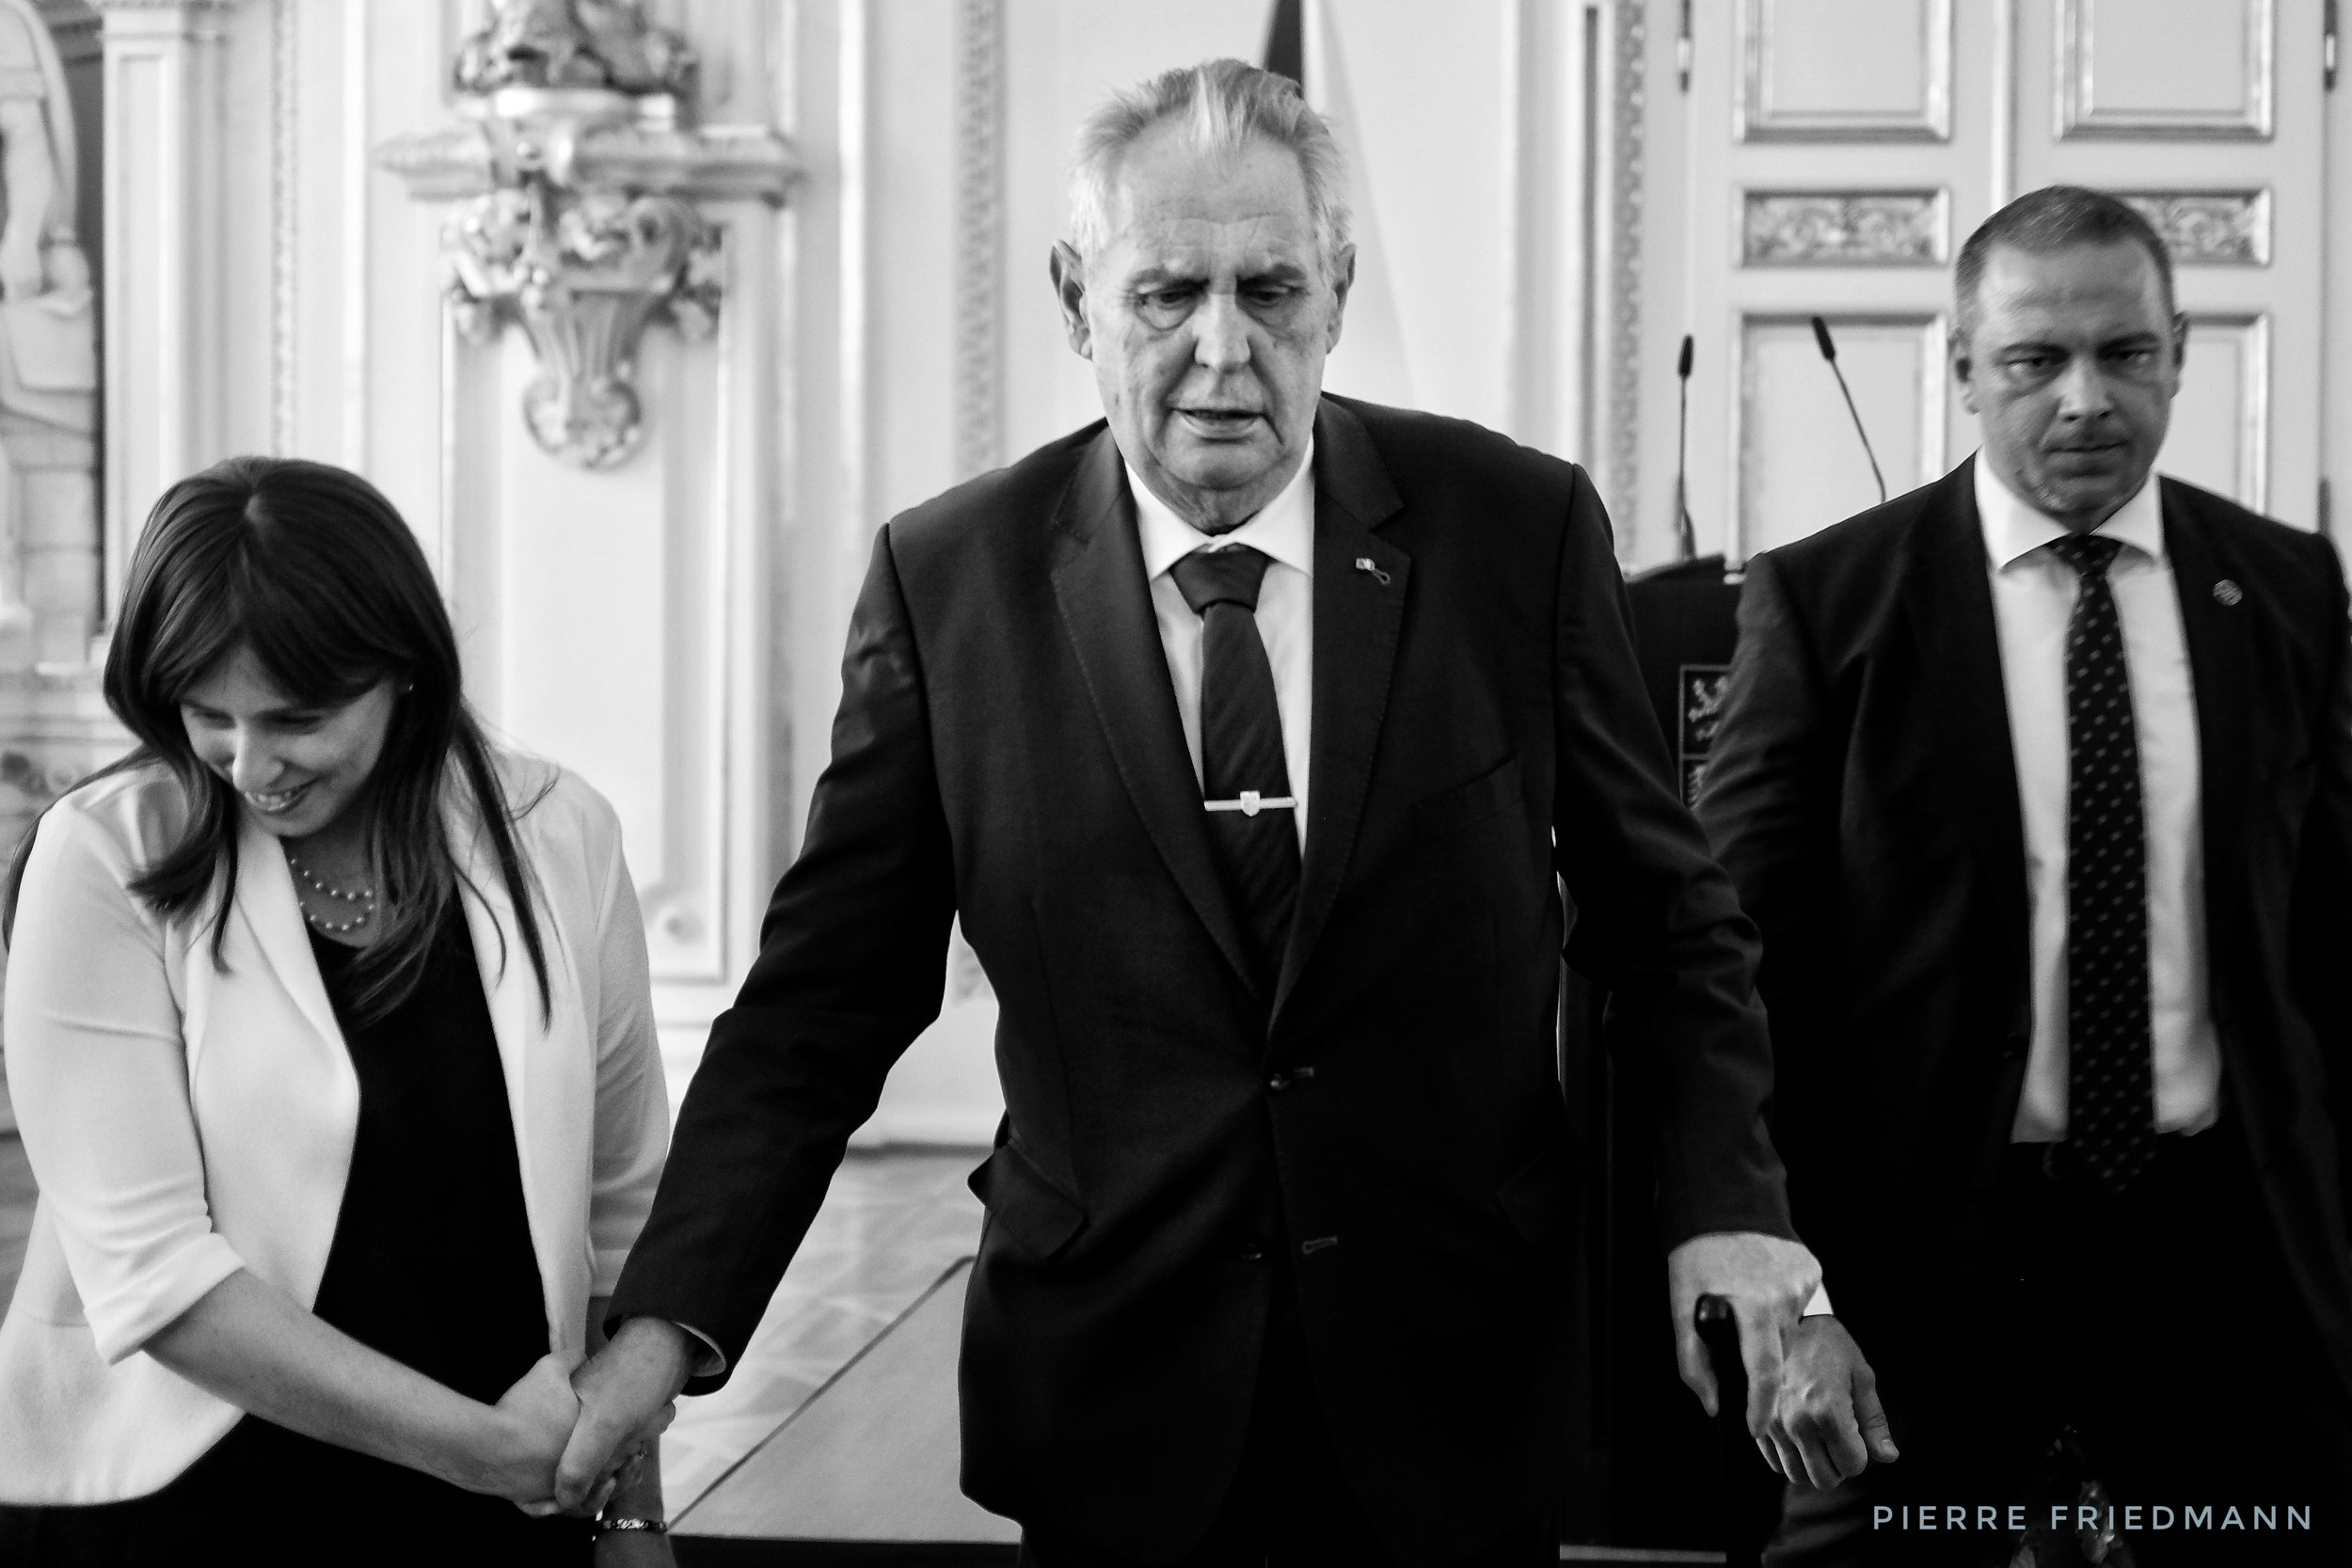 Israeli deputy minister of foreign affairs Zipi Hotoveli breaks protocol and helps Czech president Miloš Zeman get off the stage. The president hosted Israel's 70th Independence Day celebration at the Spanish Hall of Prague Castle, 25.4.2018.